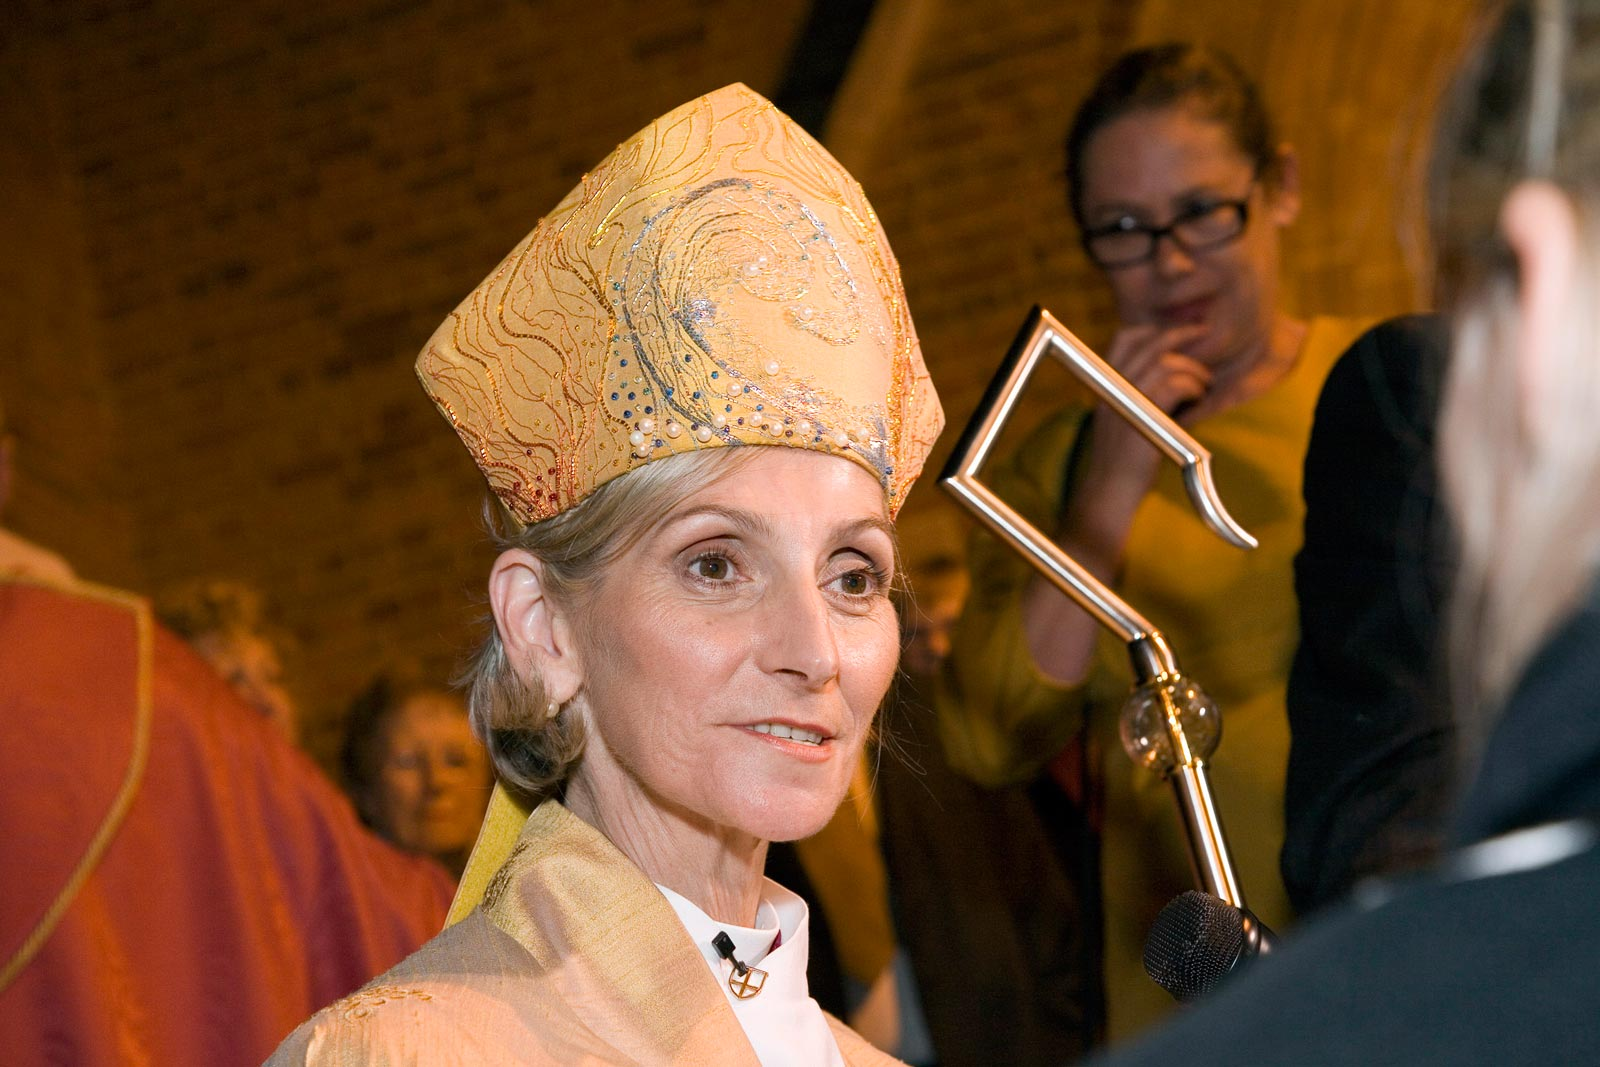 all christans should allow female bishops The cofe has allowed women bishops since legislation in 2014 and its guidance insists the 'church of england is fully and unequivocally committed to all orders of ministry being open equally to all, without reference to gender'.